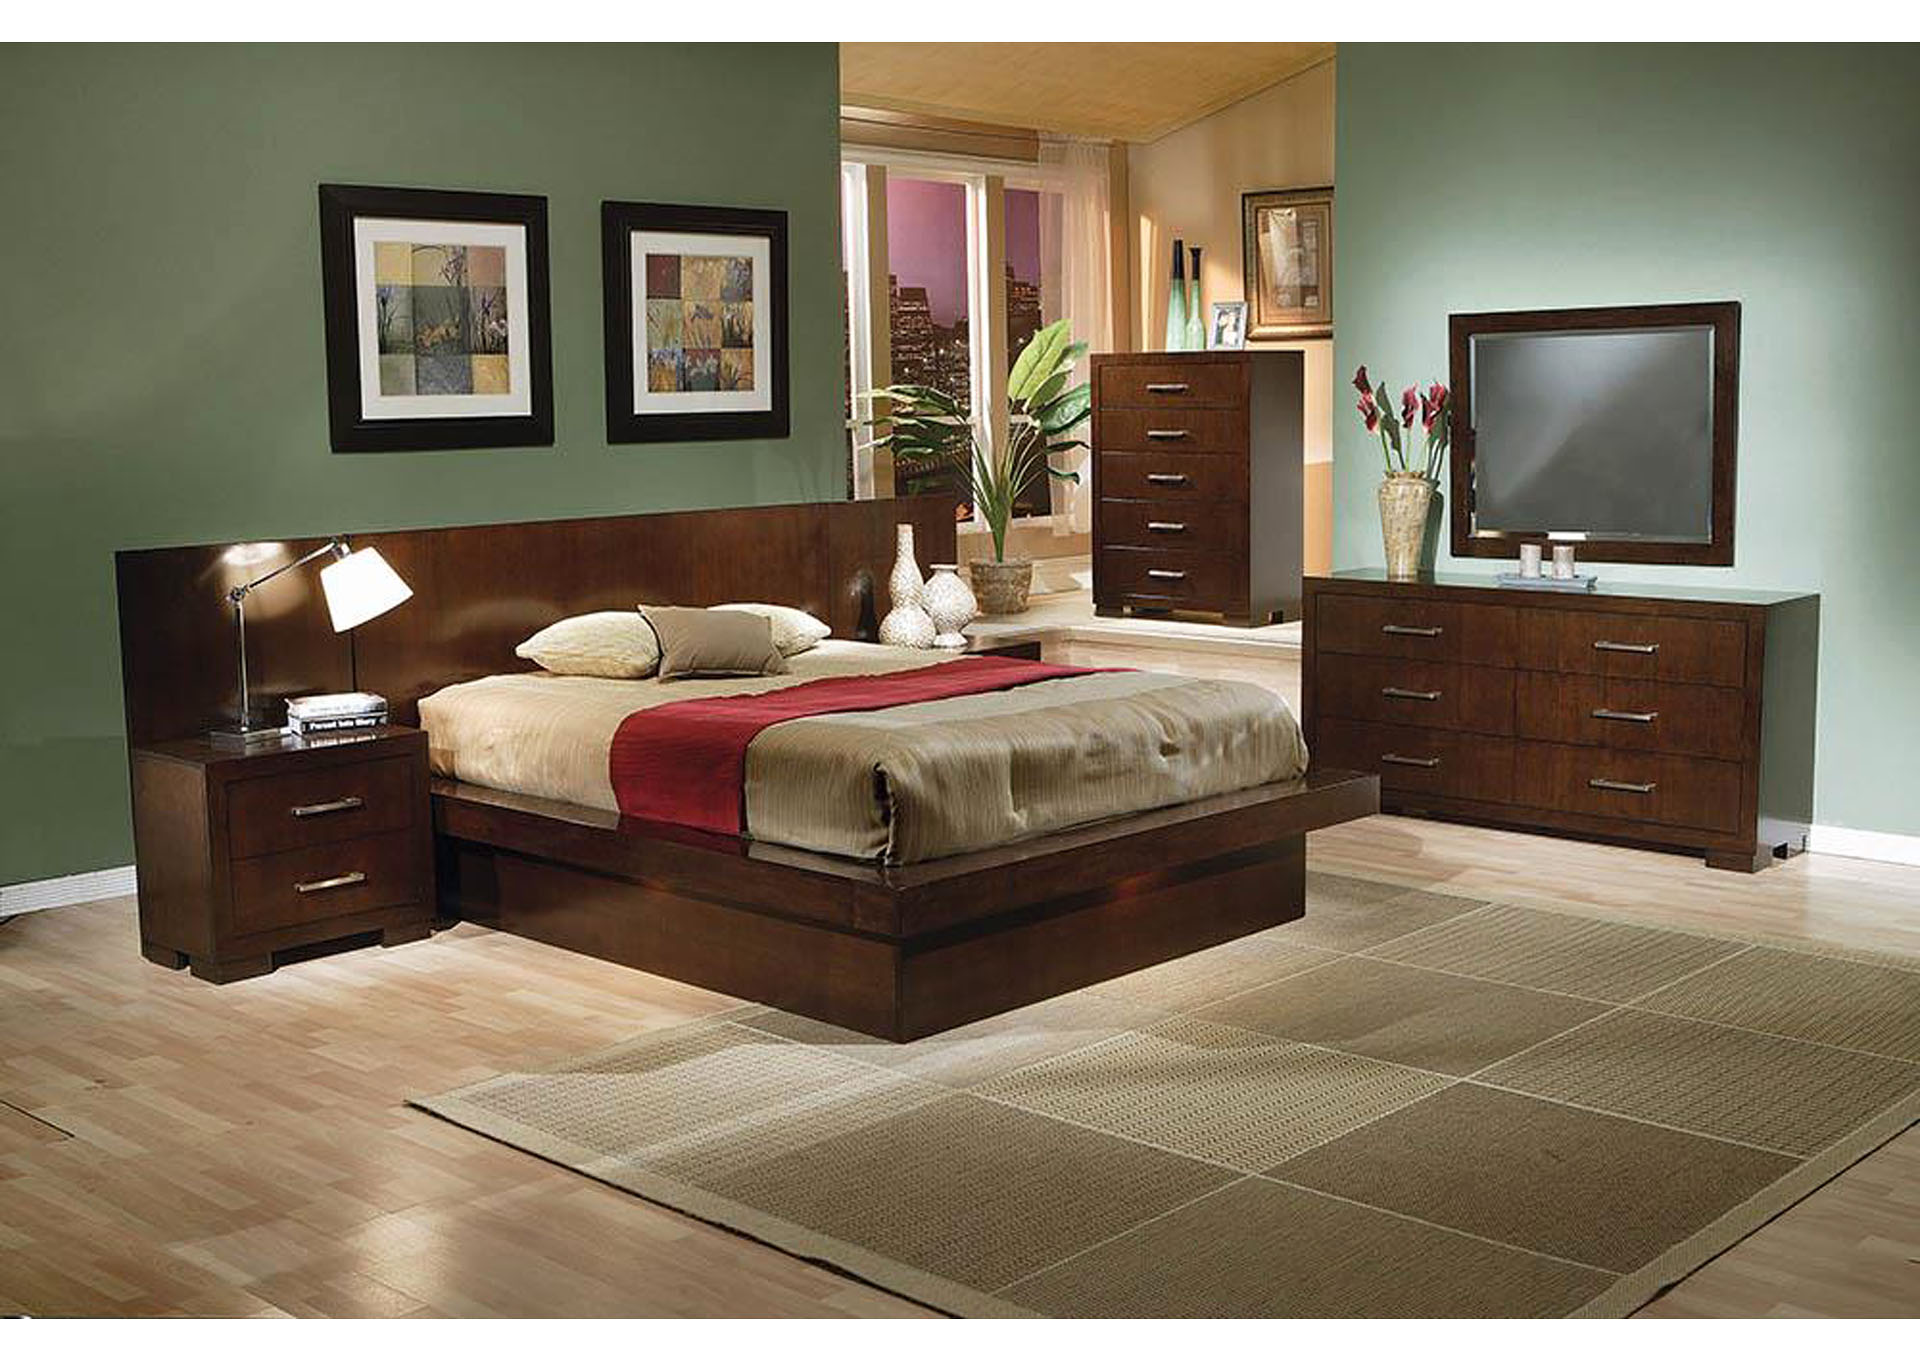 Jessica Cappuccino Queen Platform Bed,Coaster Furniture